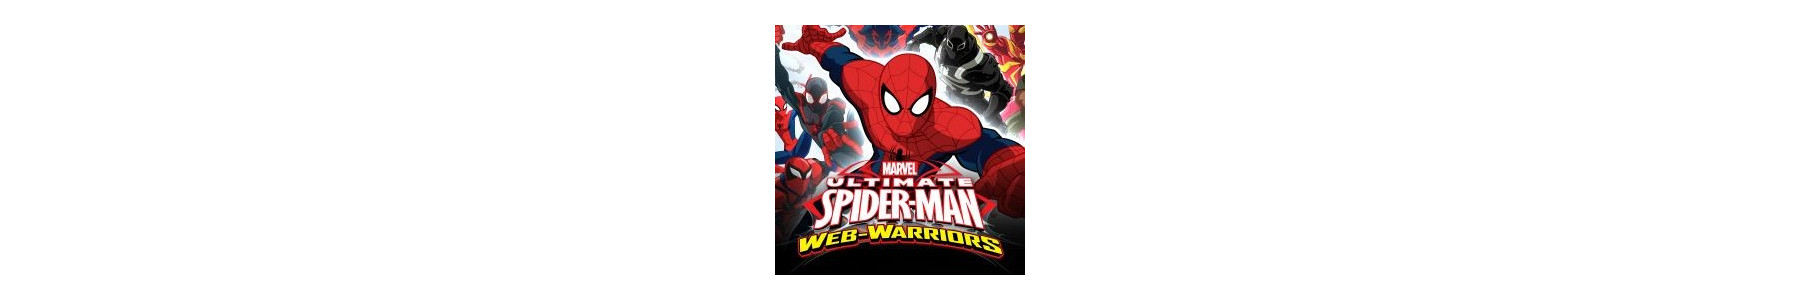 Spiderman Web Warrior